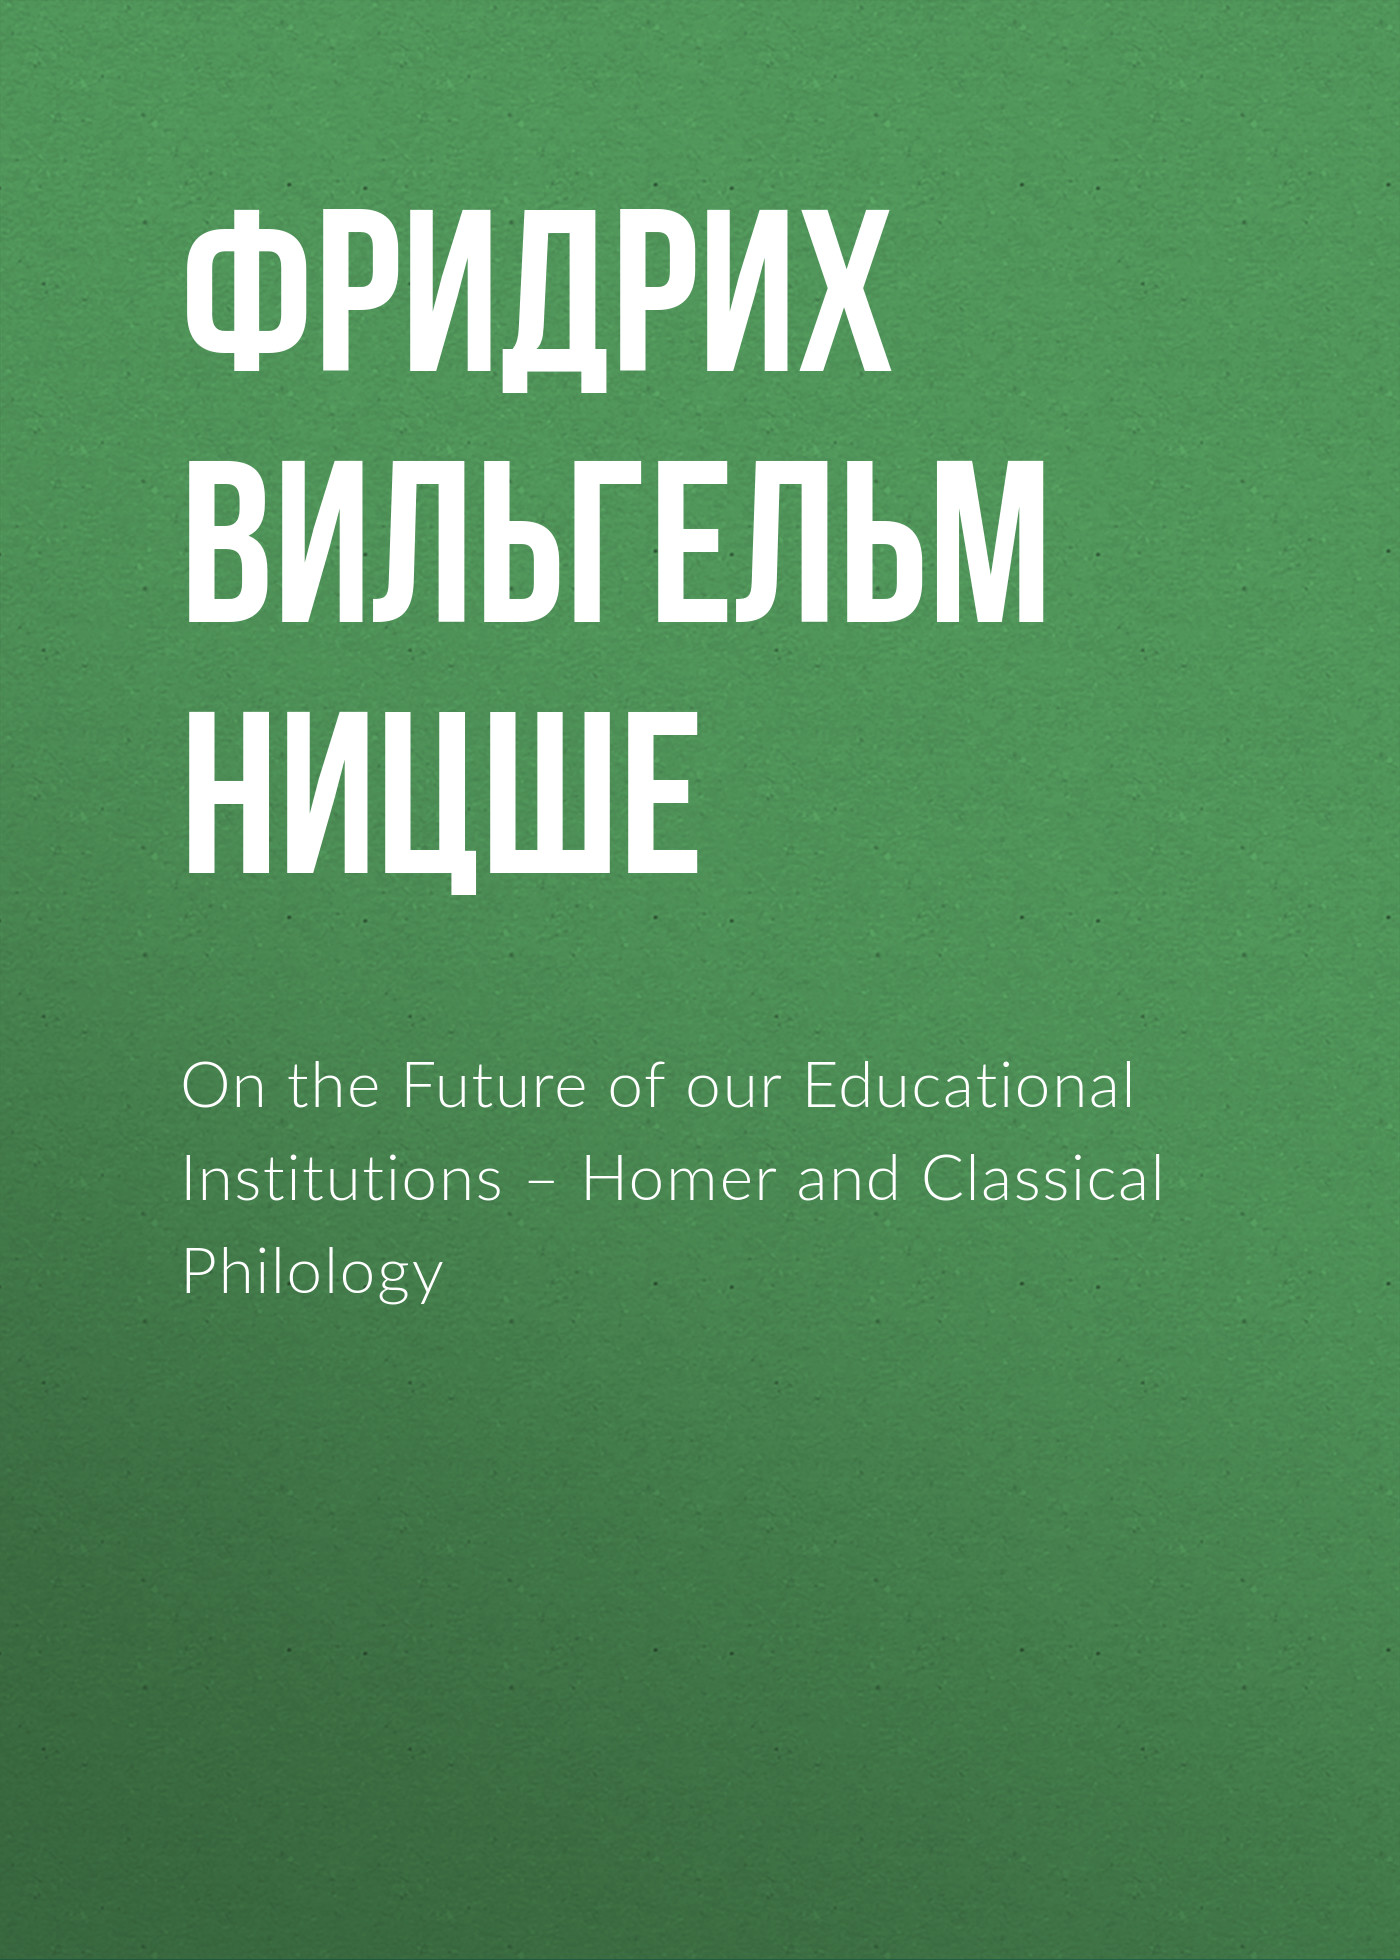 Фридрих Вильгельм Ницше On the Future of our Educational Institutions – Homer and Classical Philology